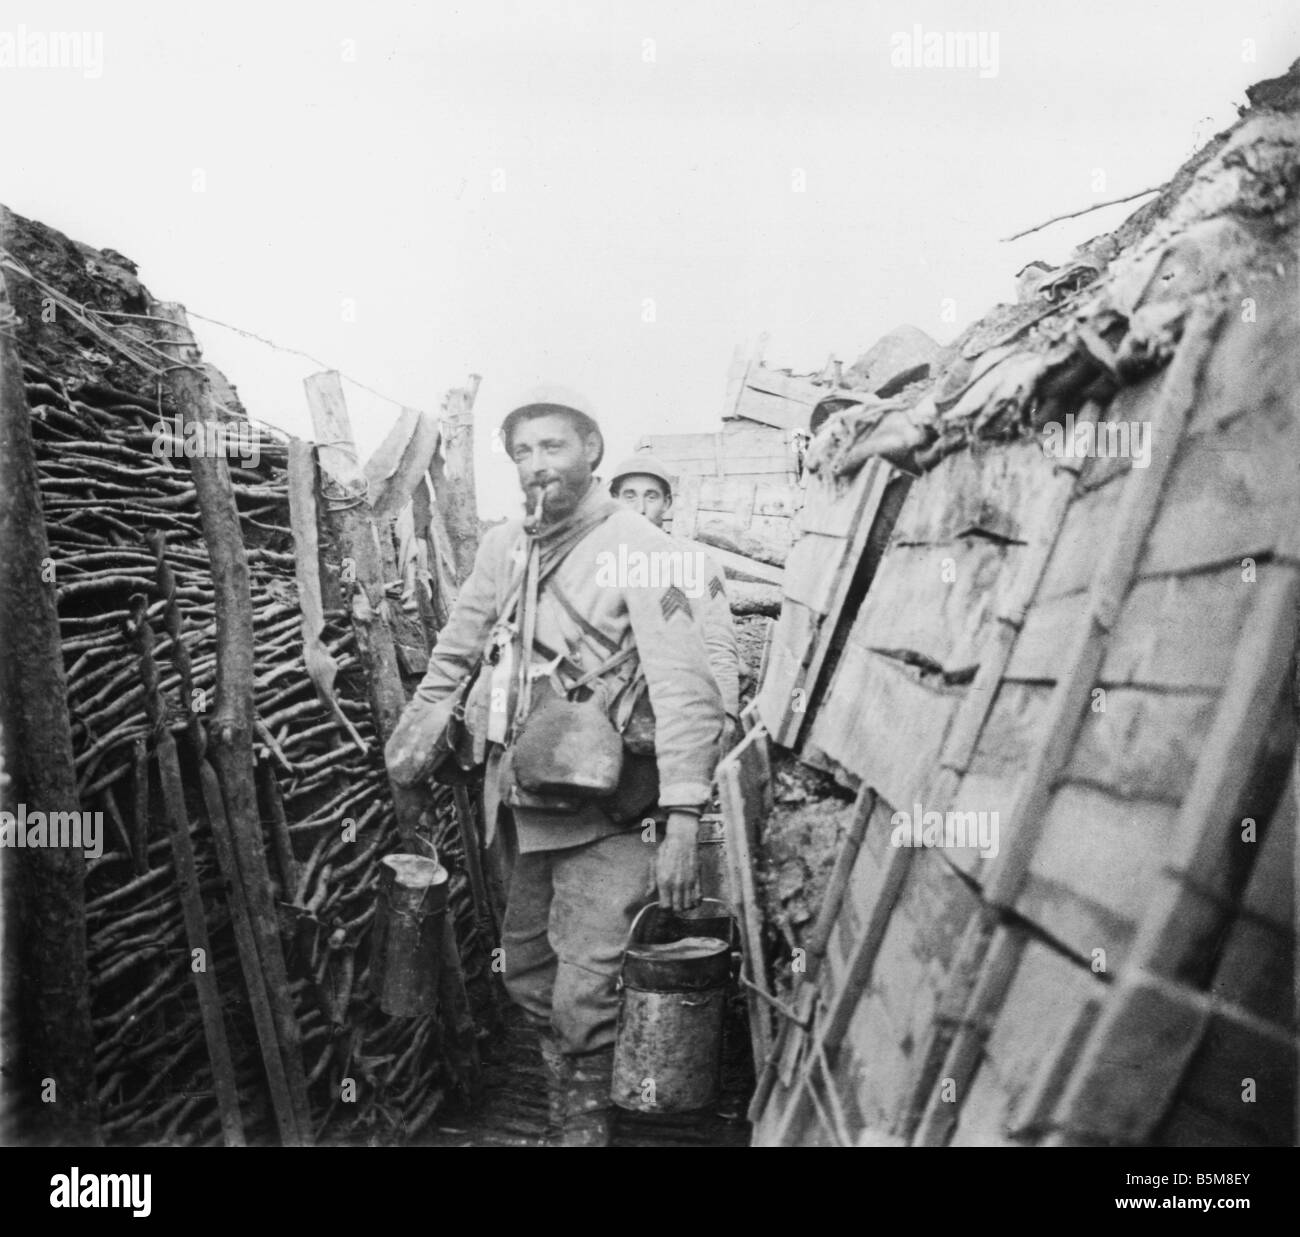 2 G55 F1 1917 10 E WW1 French Army Cooking Duty Photo History World War One France French soldiers on cooking duty - Stock Image